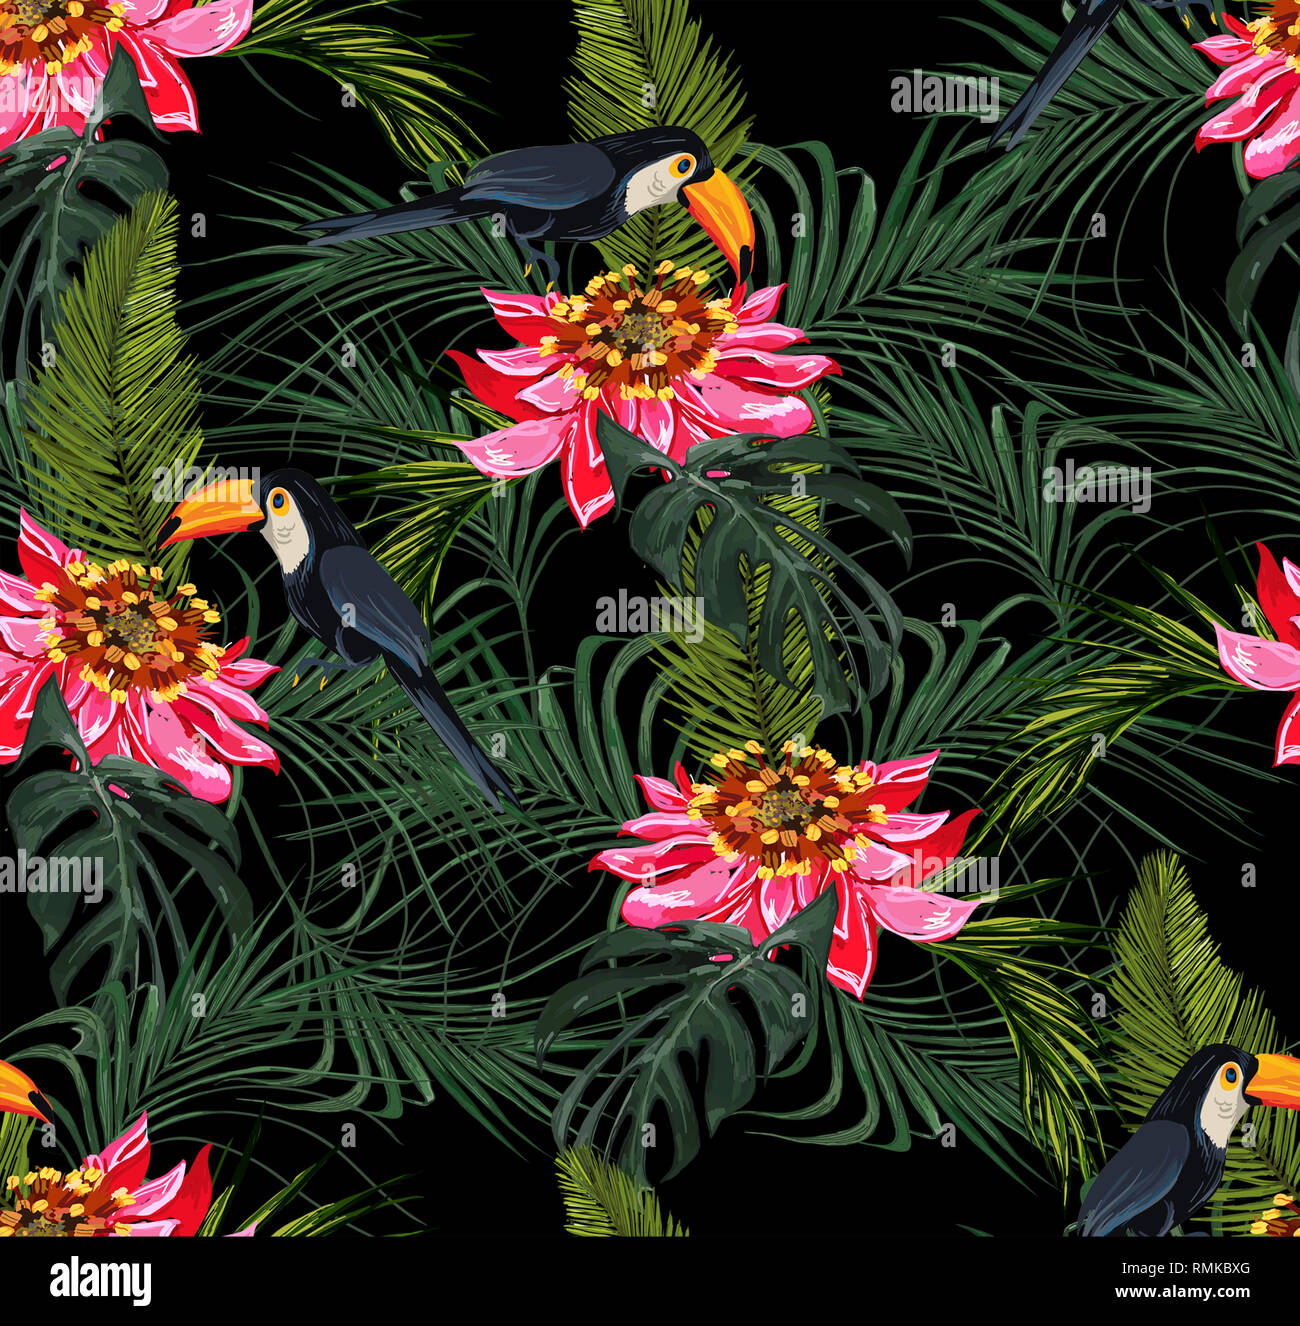 Beautiful Seamless Vector Floral Summer Pattern Background With